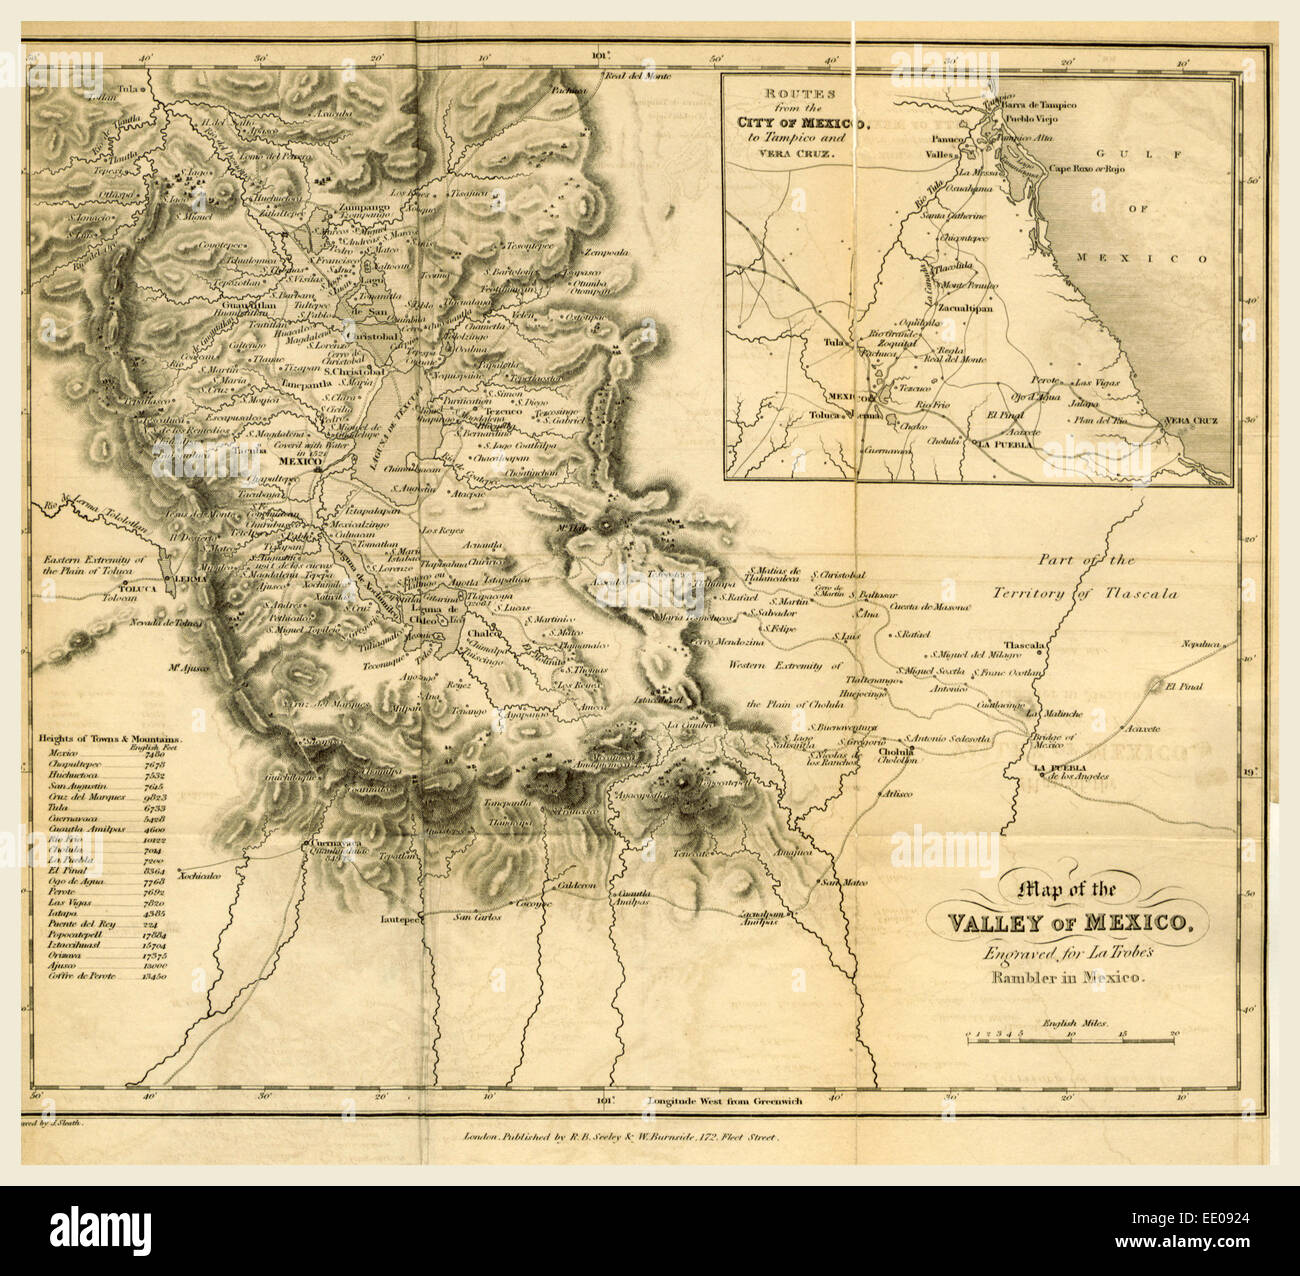 Map Of The Valley Of Mexico 1834 19th Century Engraving Stock